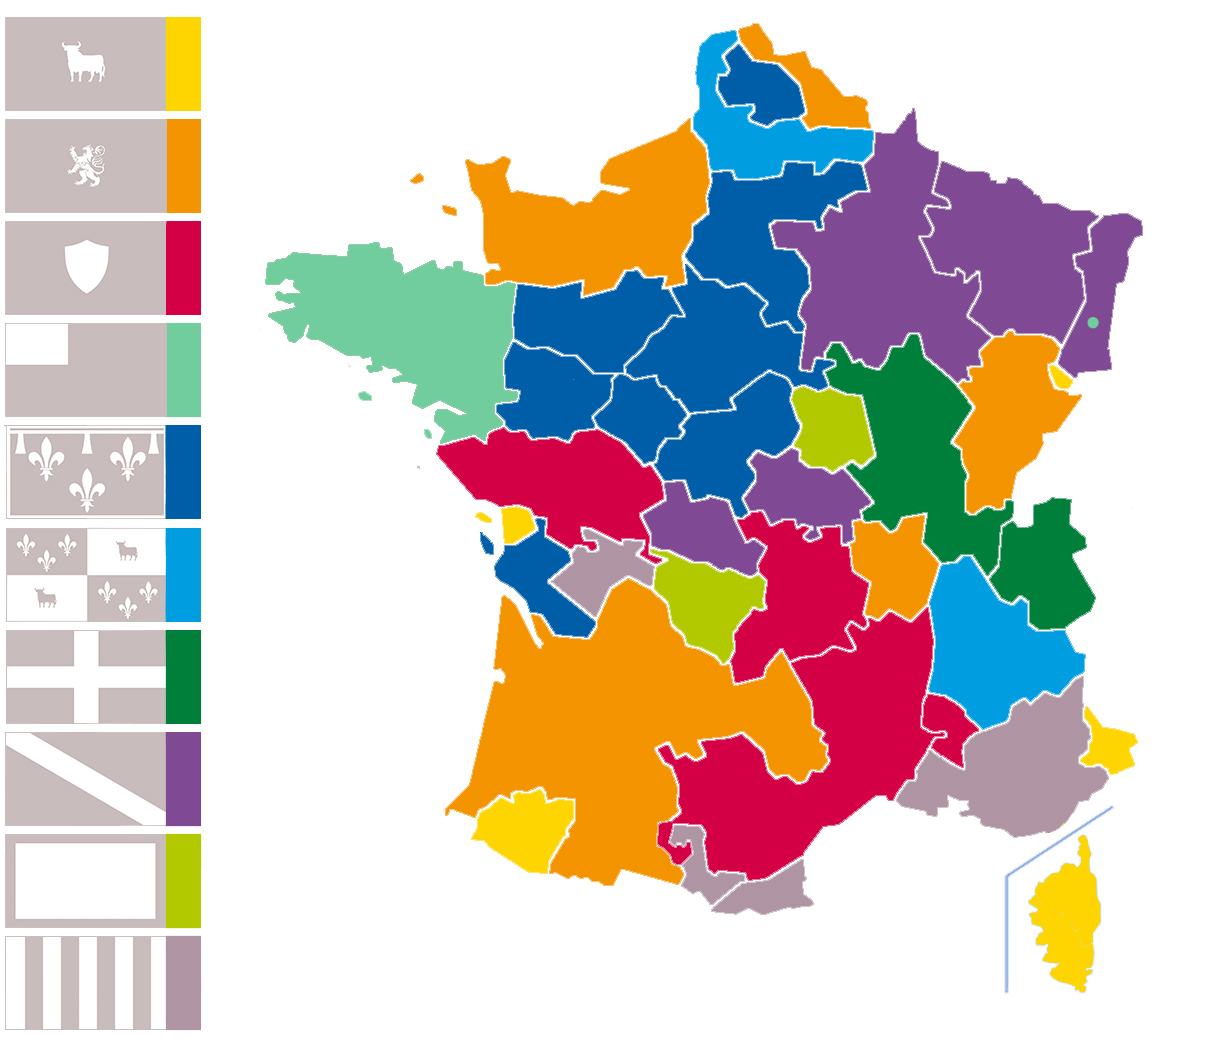 French flags types map